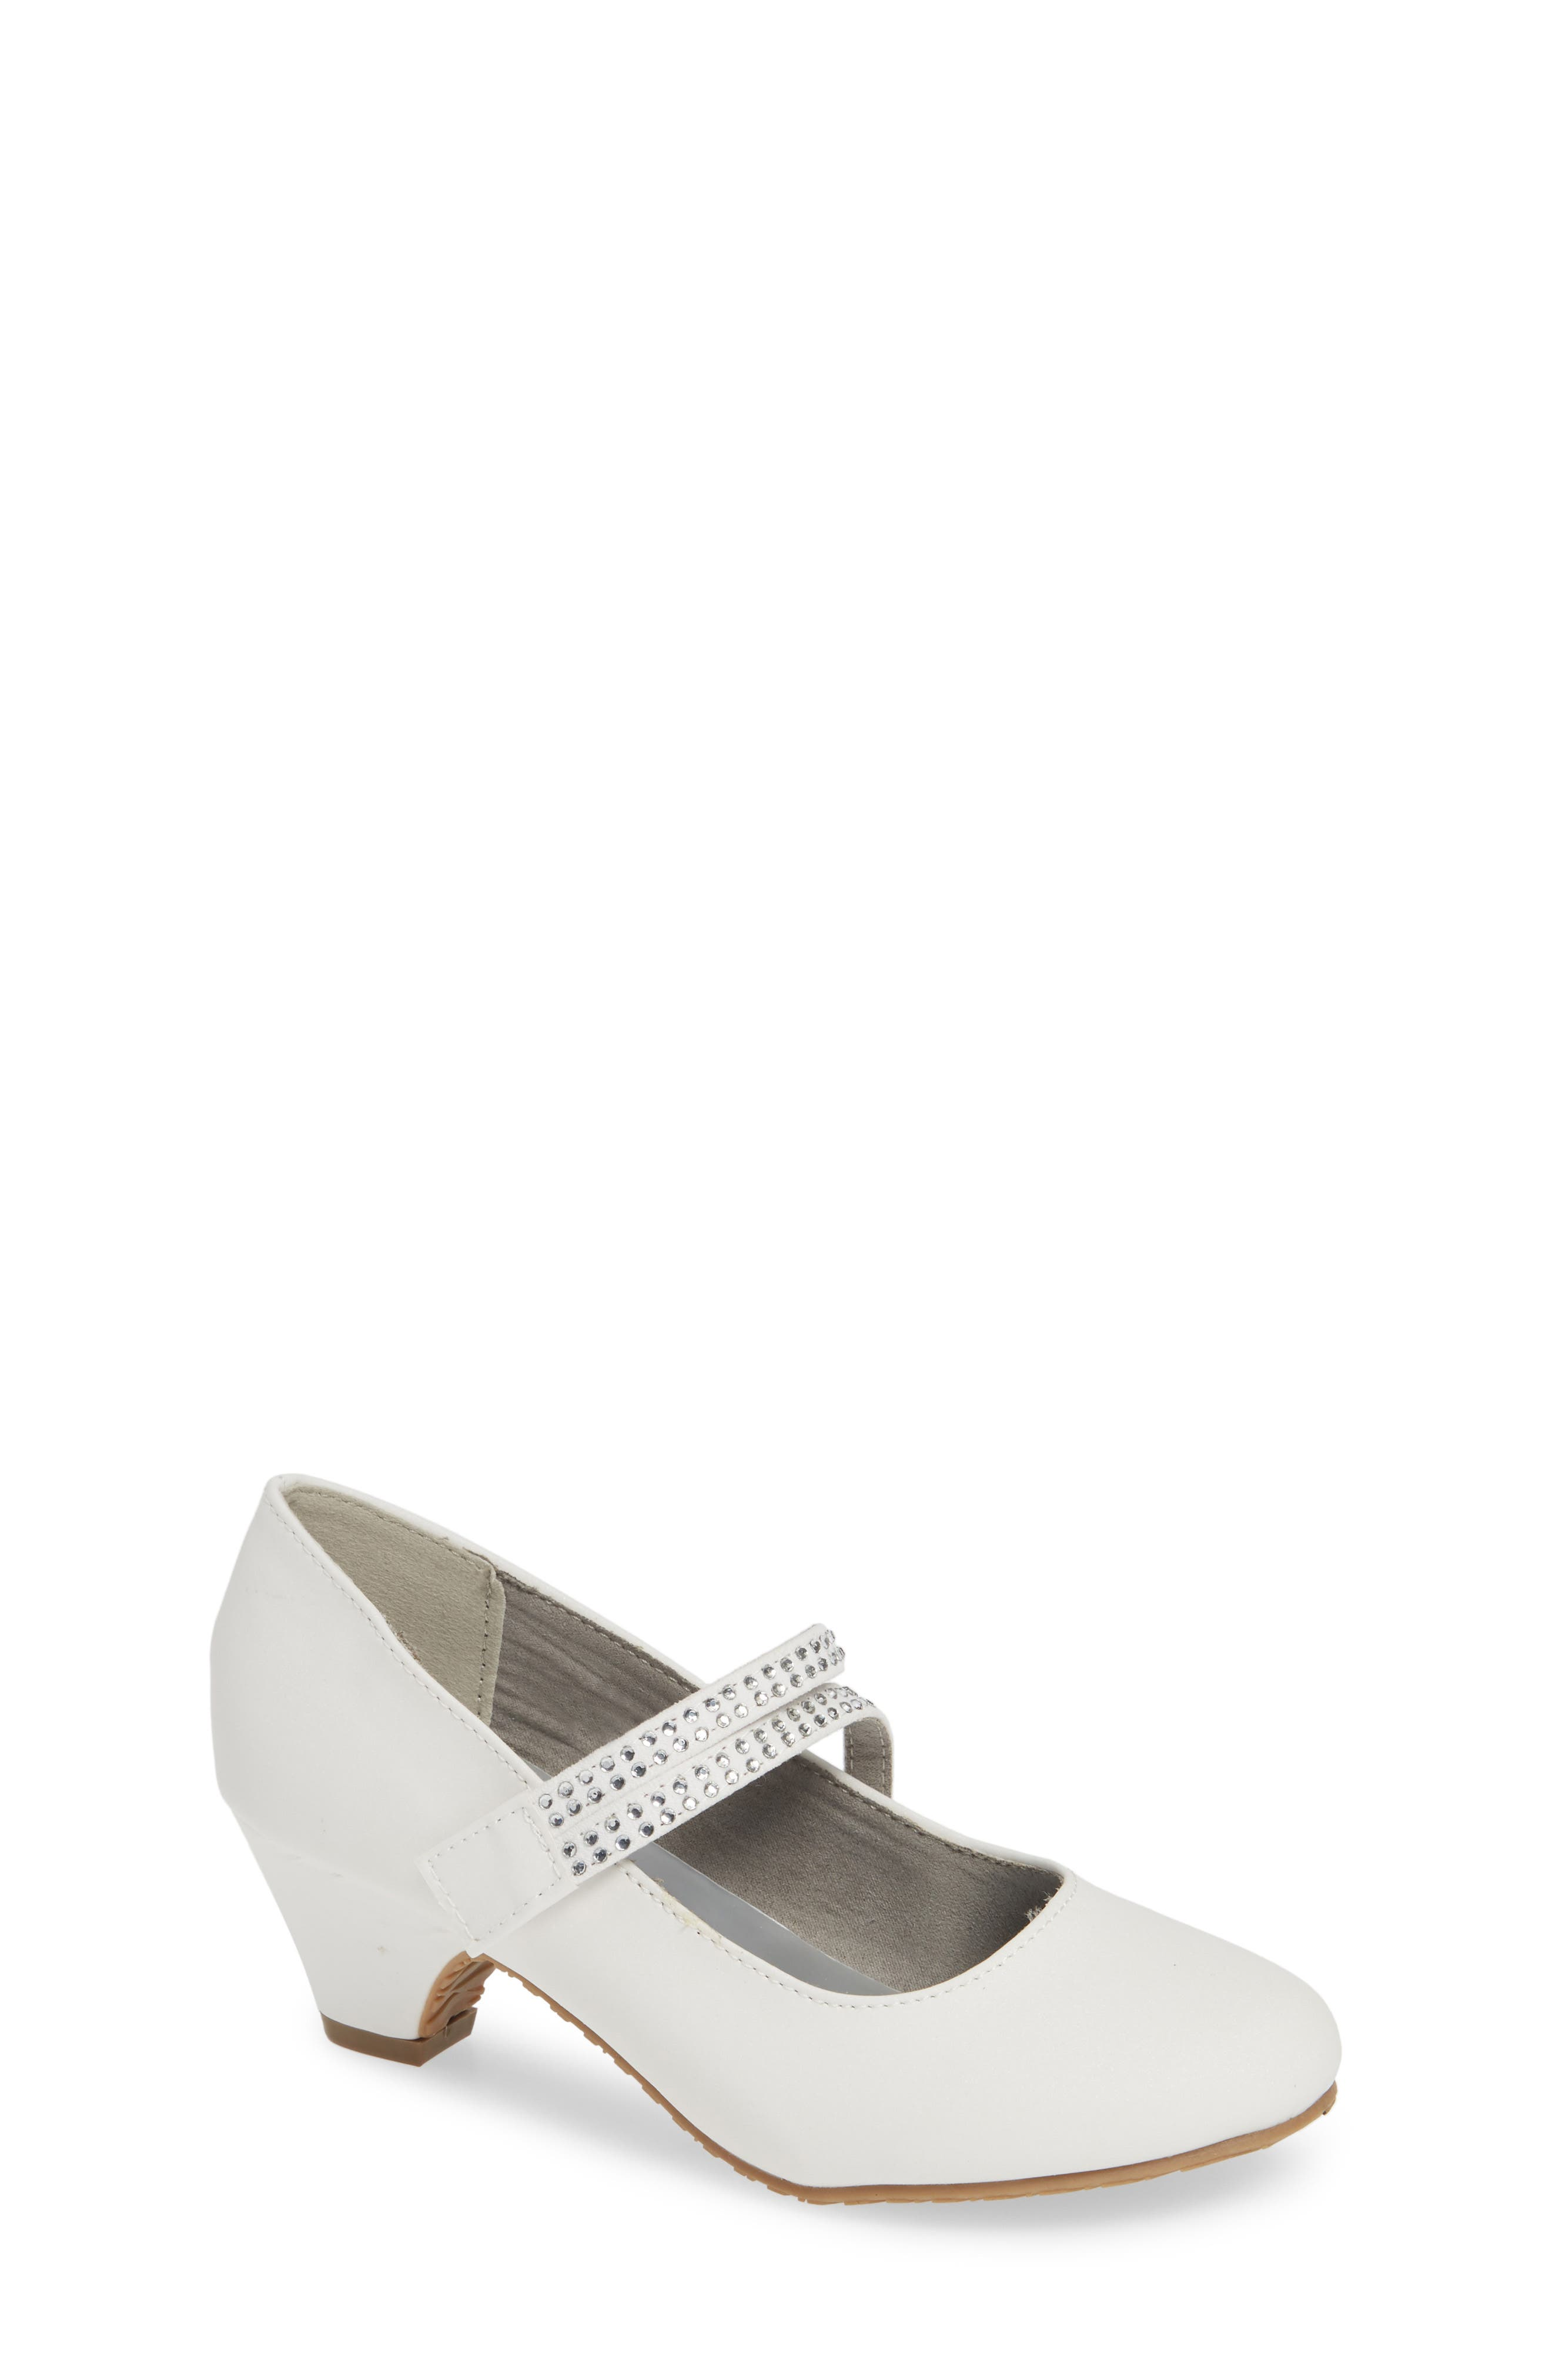 REACTION KENNETH COLE Dorothy Sophia Mary Jane Pump, Main, color, WHITE